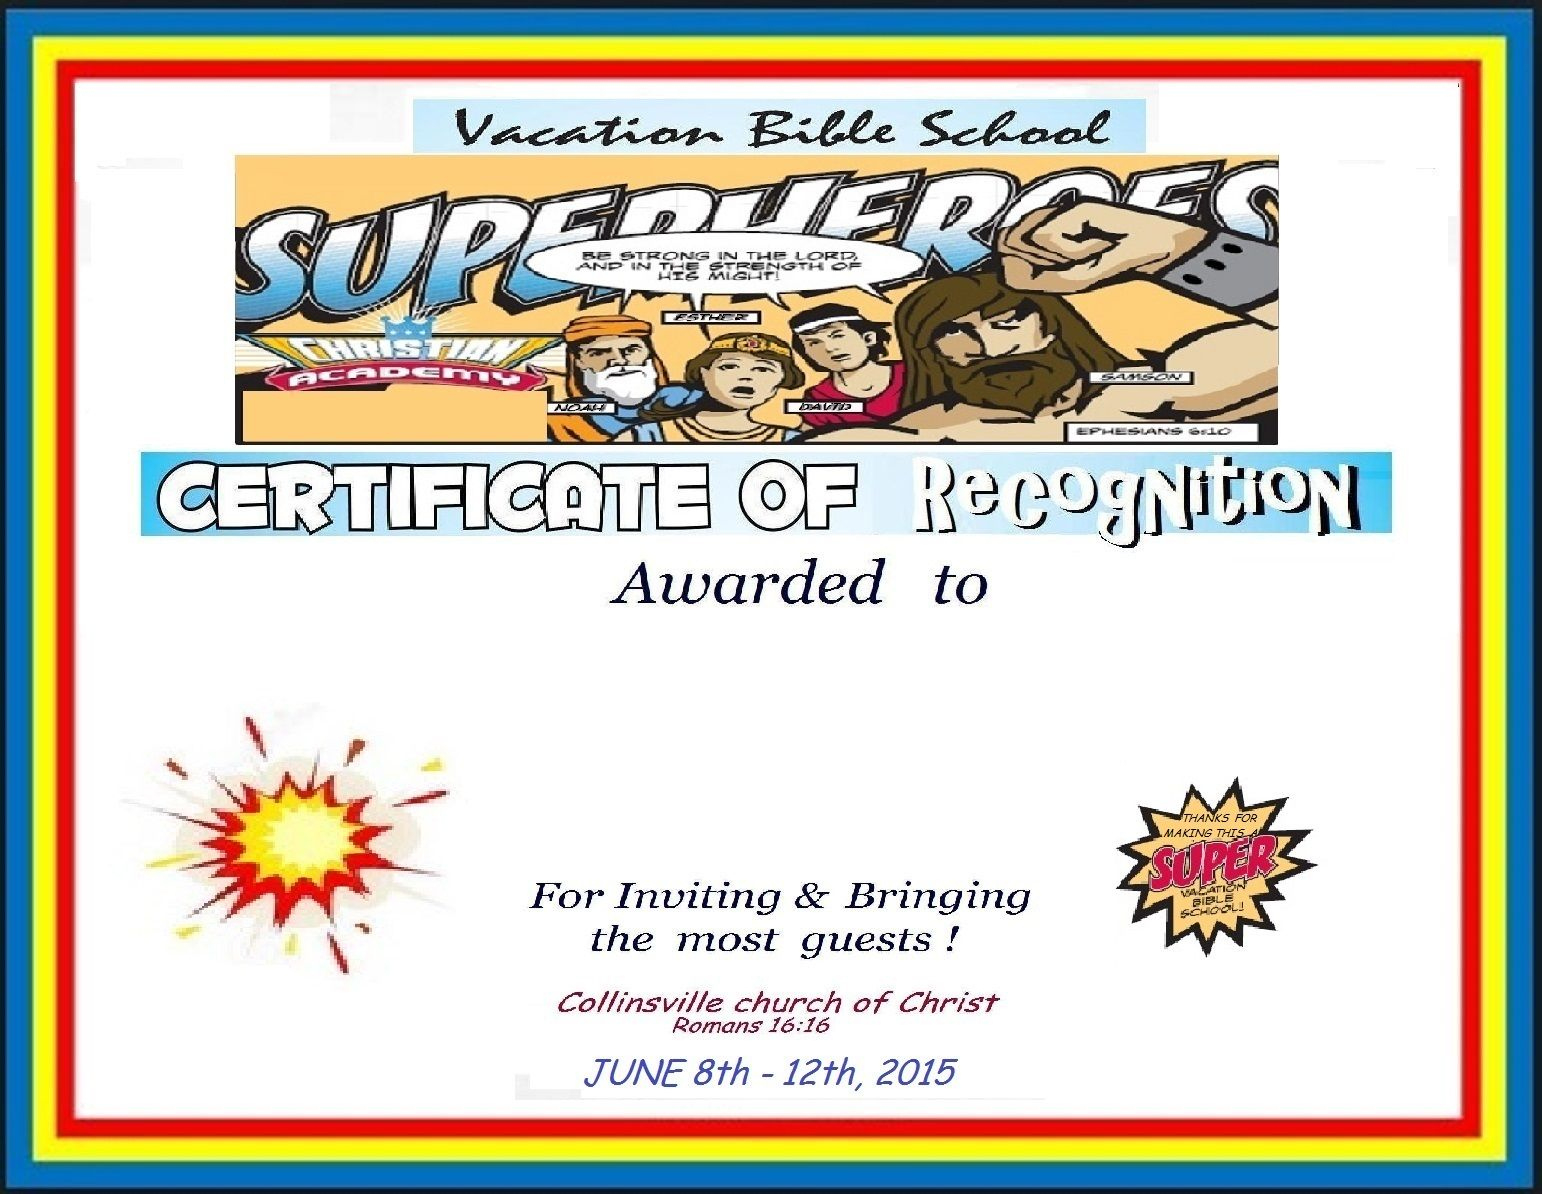 Vbs Certificate Super Heros  Vacation Bible School with regard to Quality Printable Vbs Certificates Free